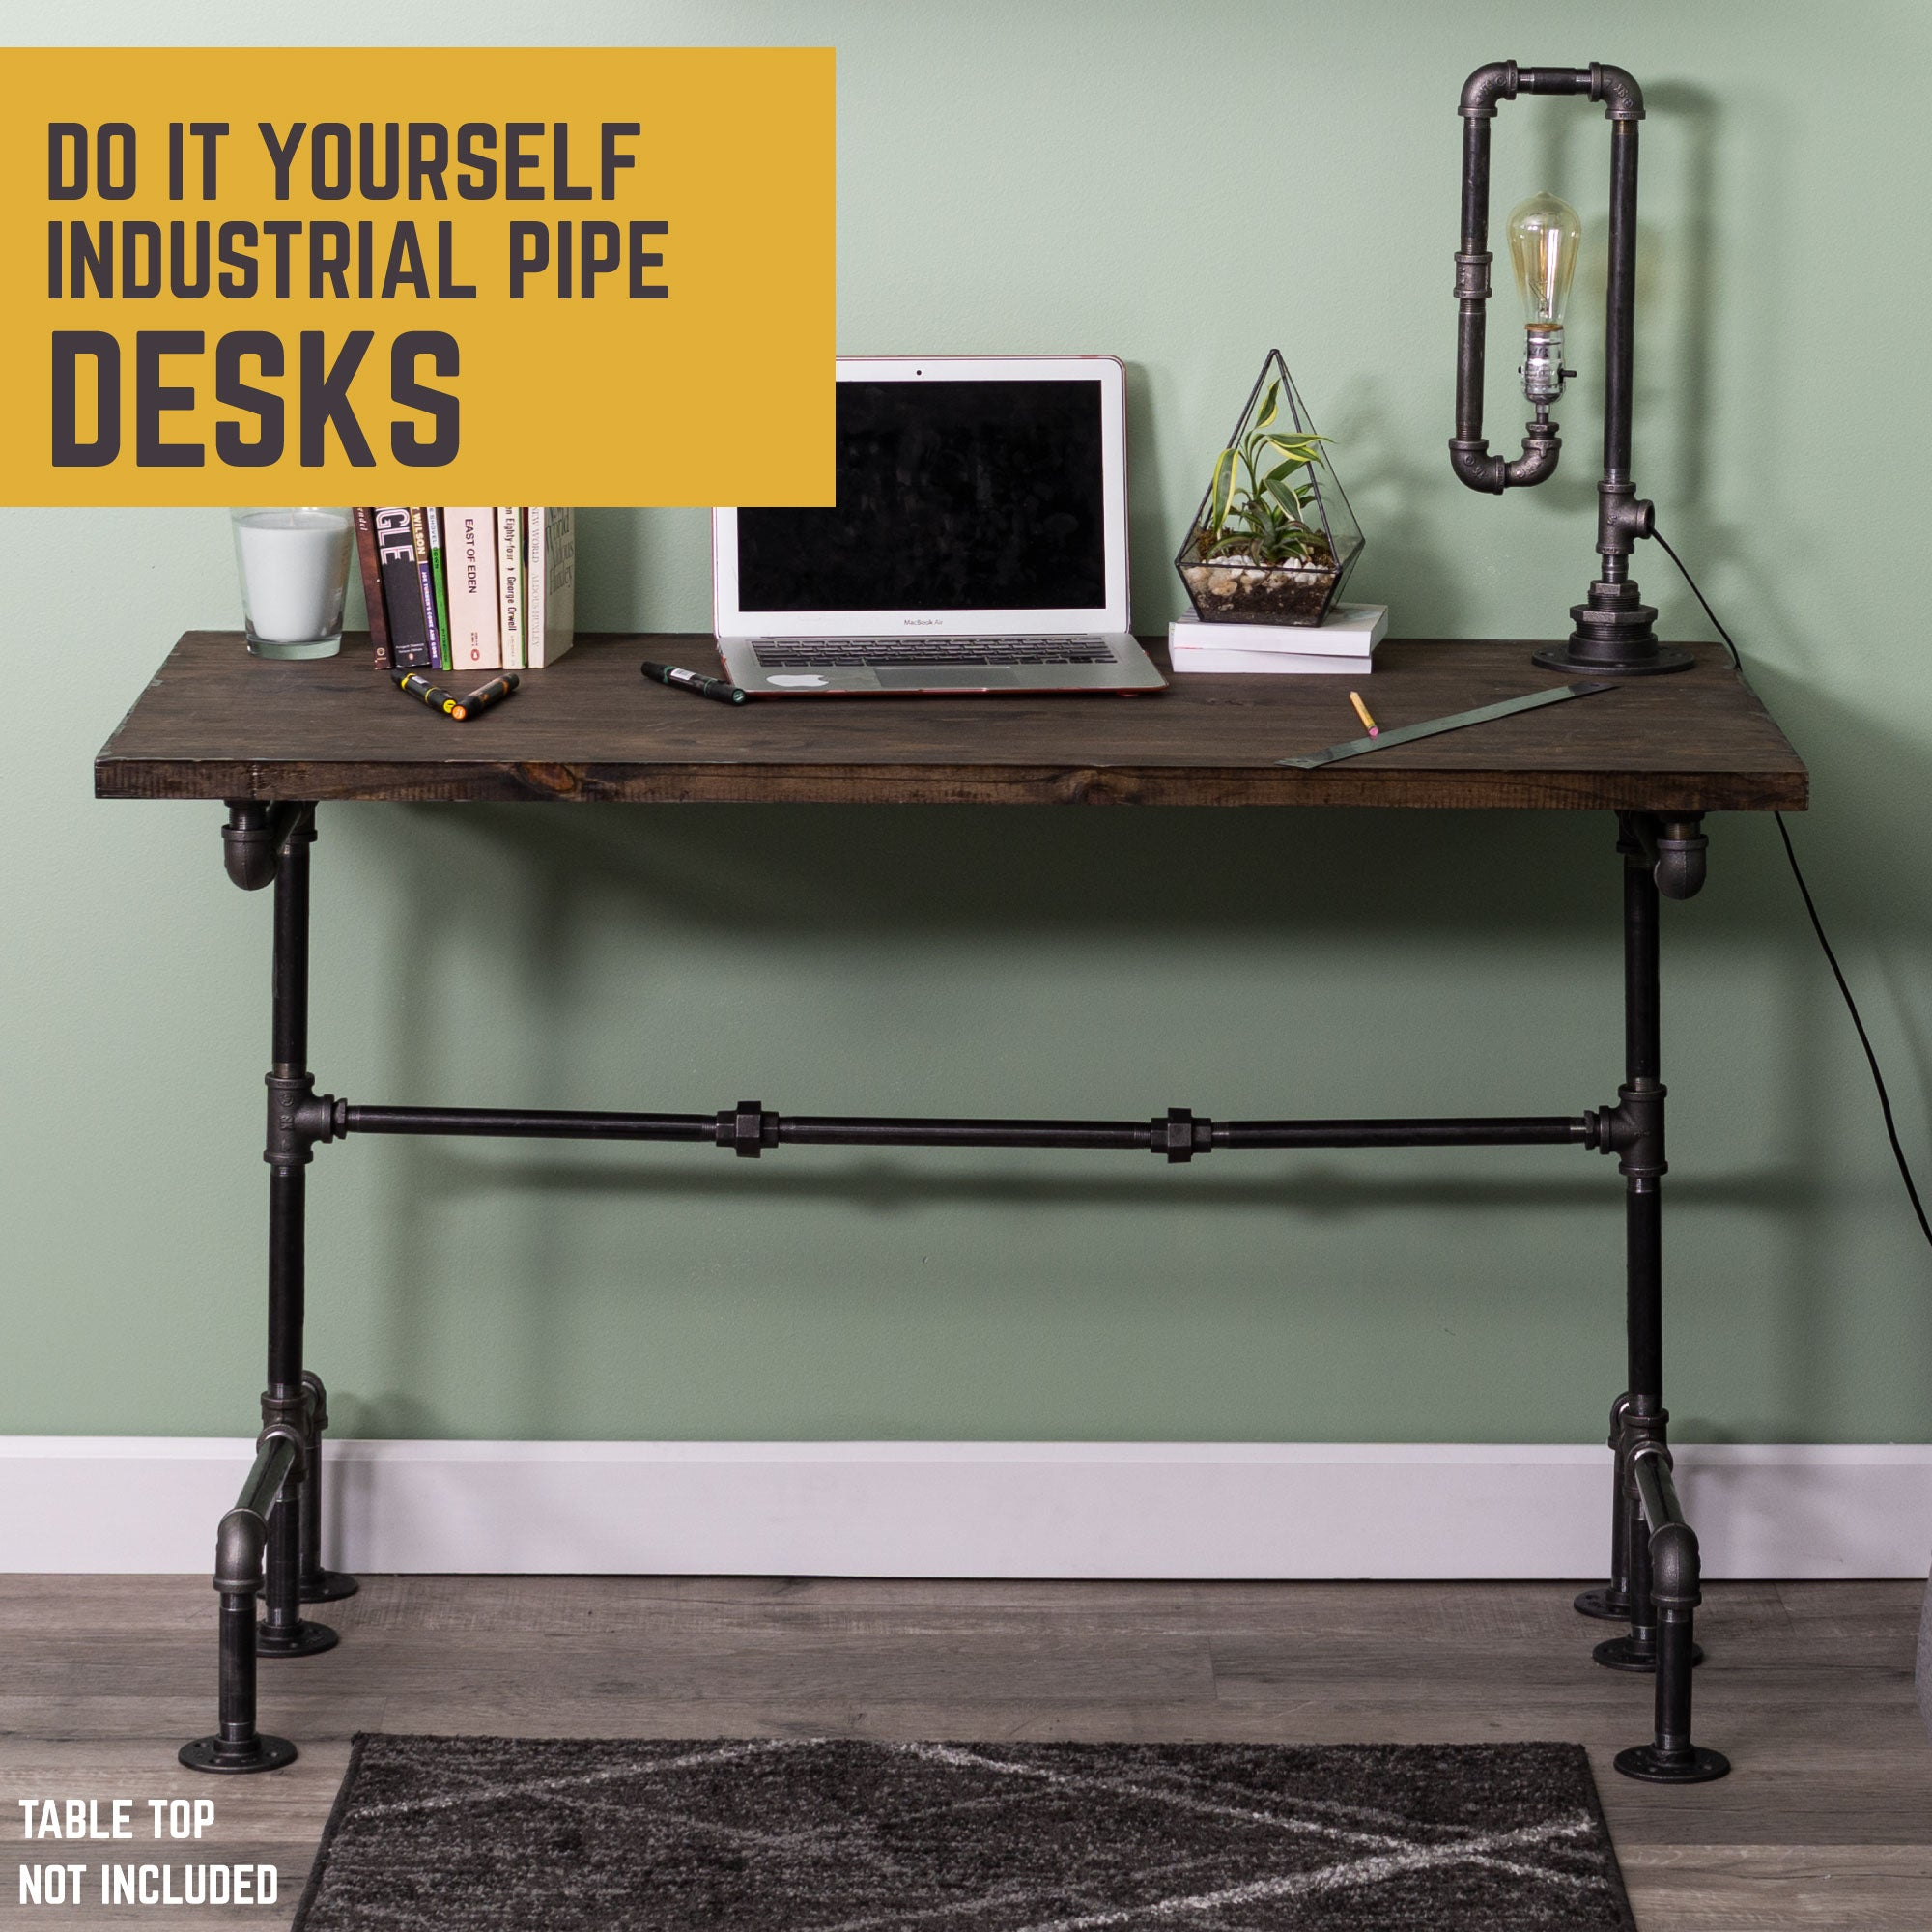 M Design Desk By PIPE DECOR - Pipe Decor